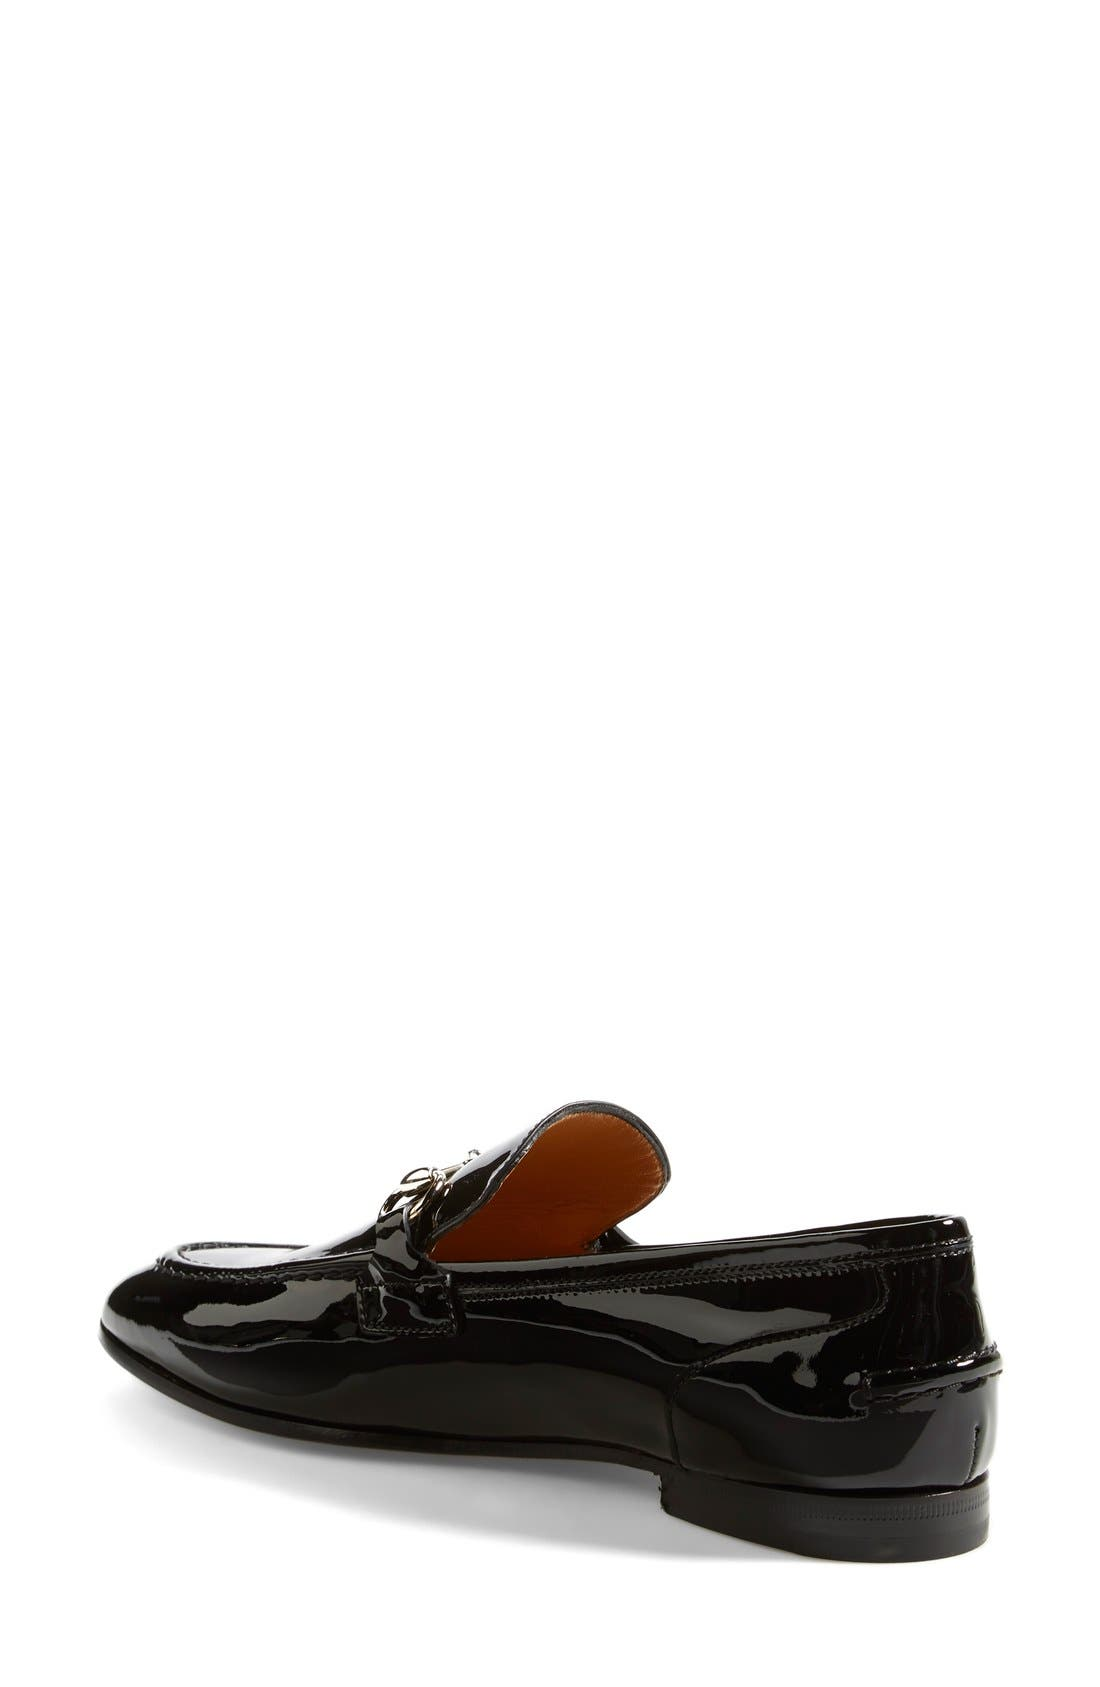 Alternate Image 2  - Gucci 'New Power' Patent Leather Loafer